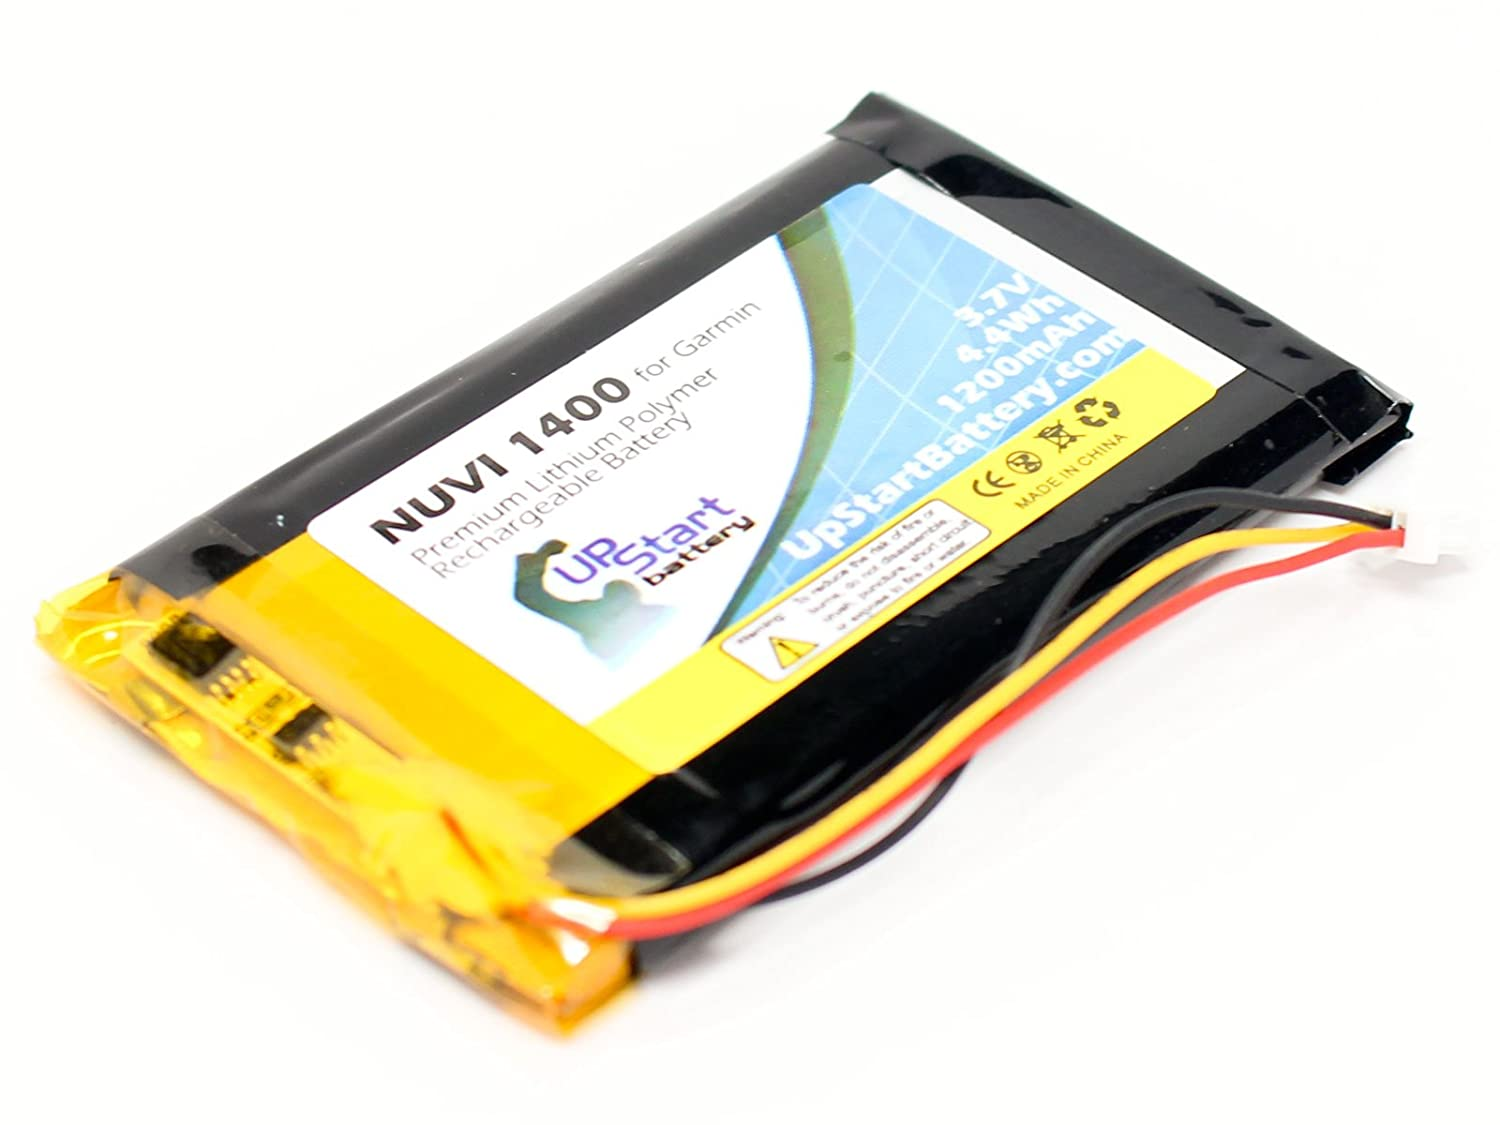 1200mAh, 3.7V, Lithium Polymer Garmin Nuvi 1390 Battery with Tools Replacement for Garmin GPS Navigator Batteries